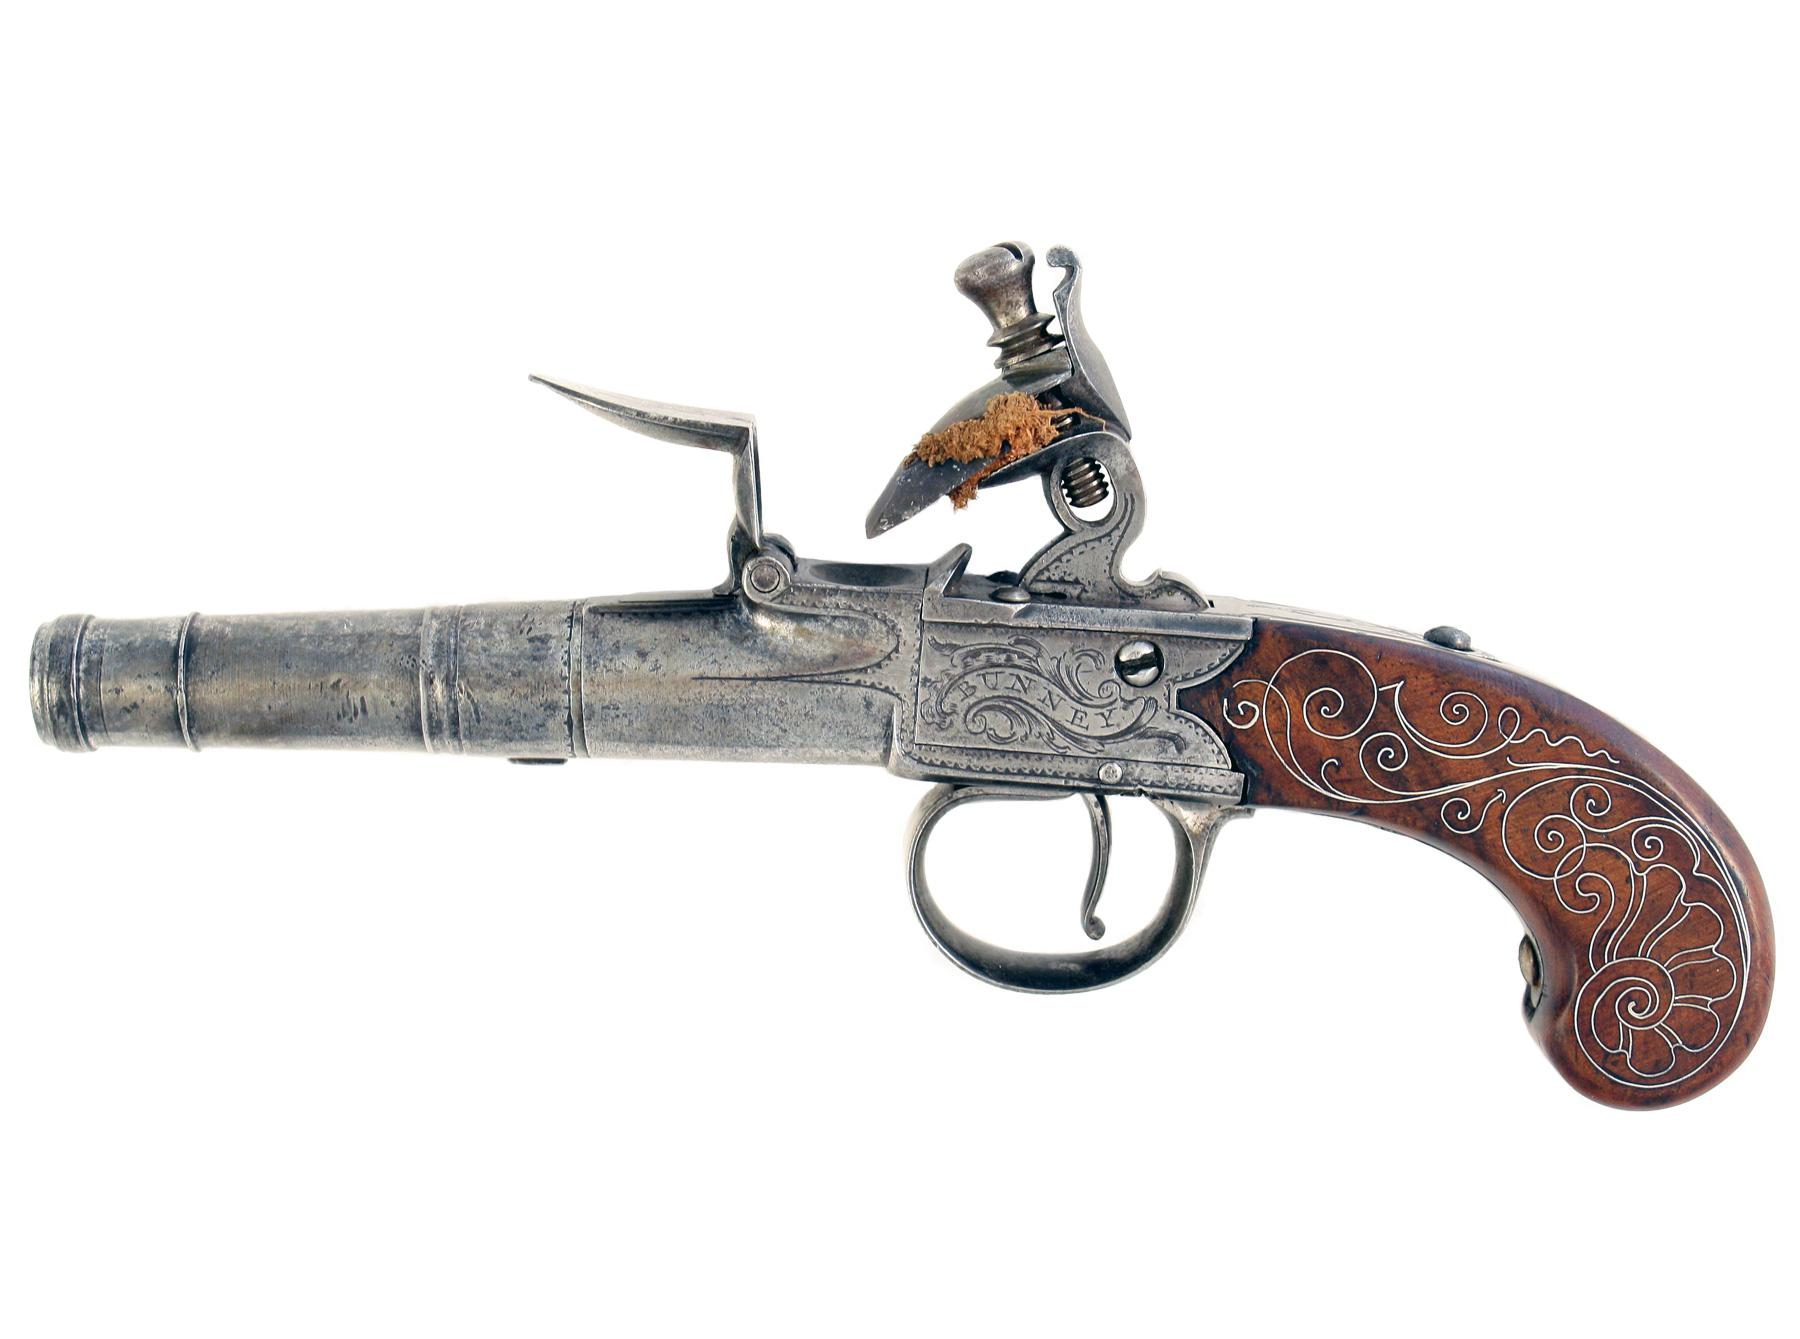 A Silver Mounted Flintlock Pistol by Bunney